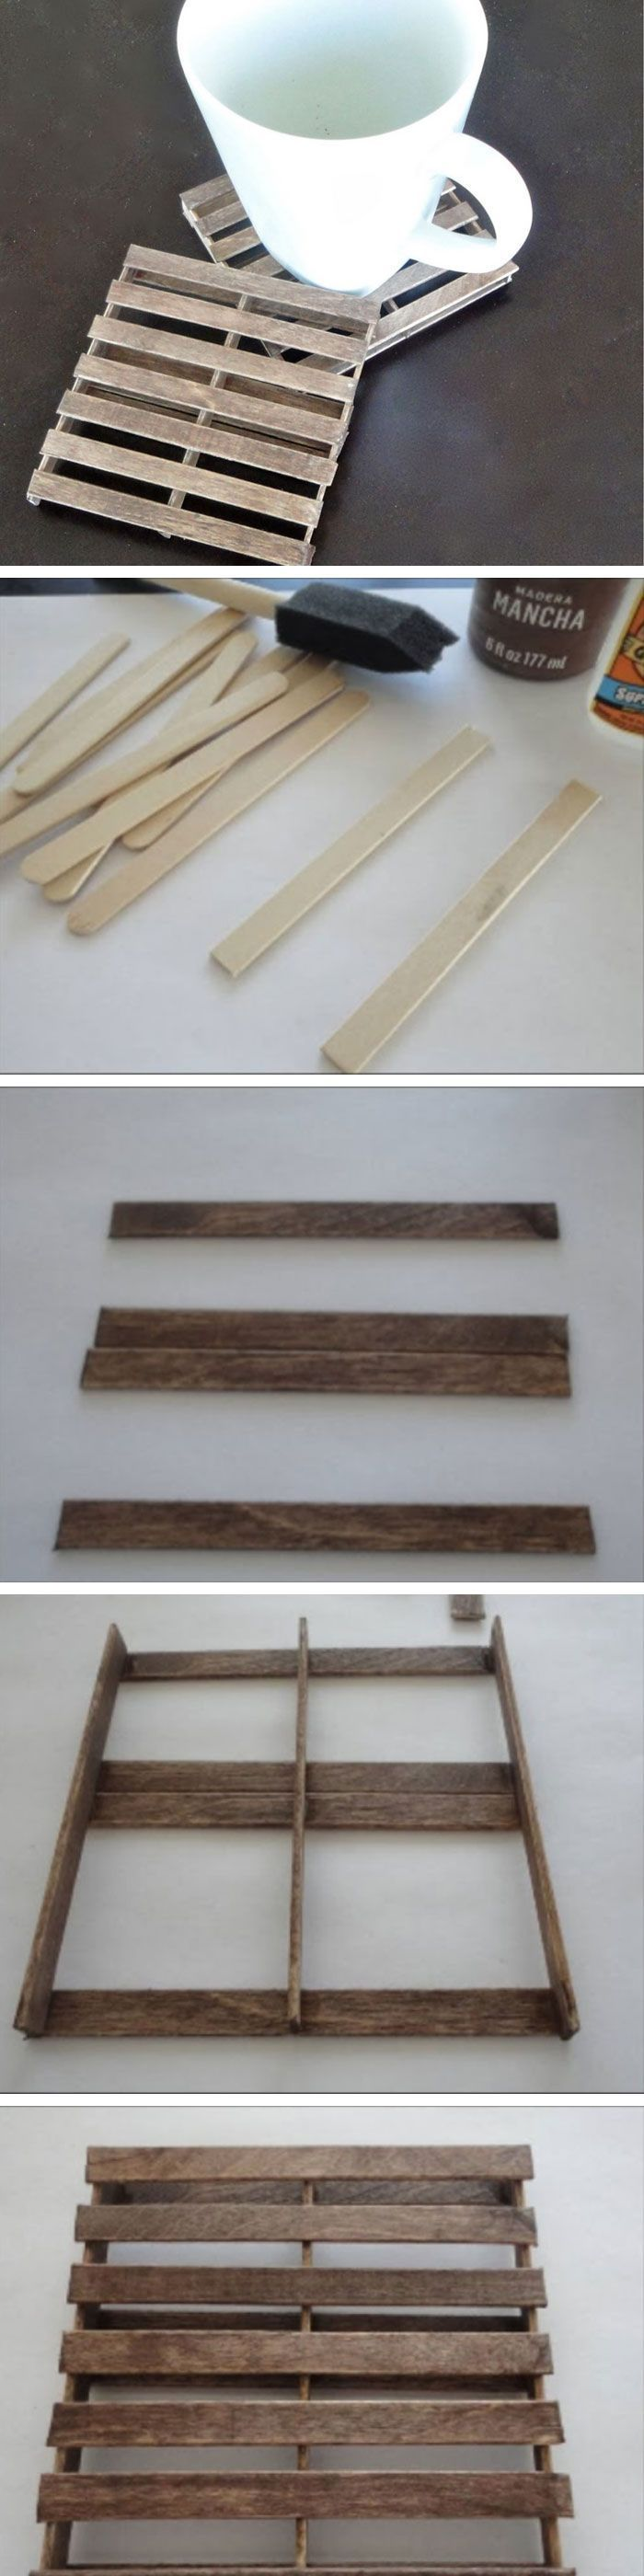 Diy Projects For Men 324 Best Man Things Diy Handmade Crafts And More Images On